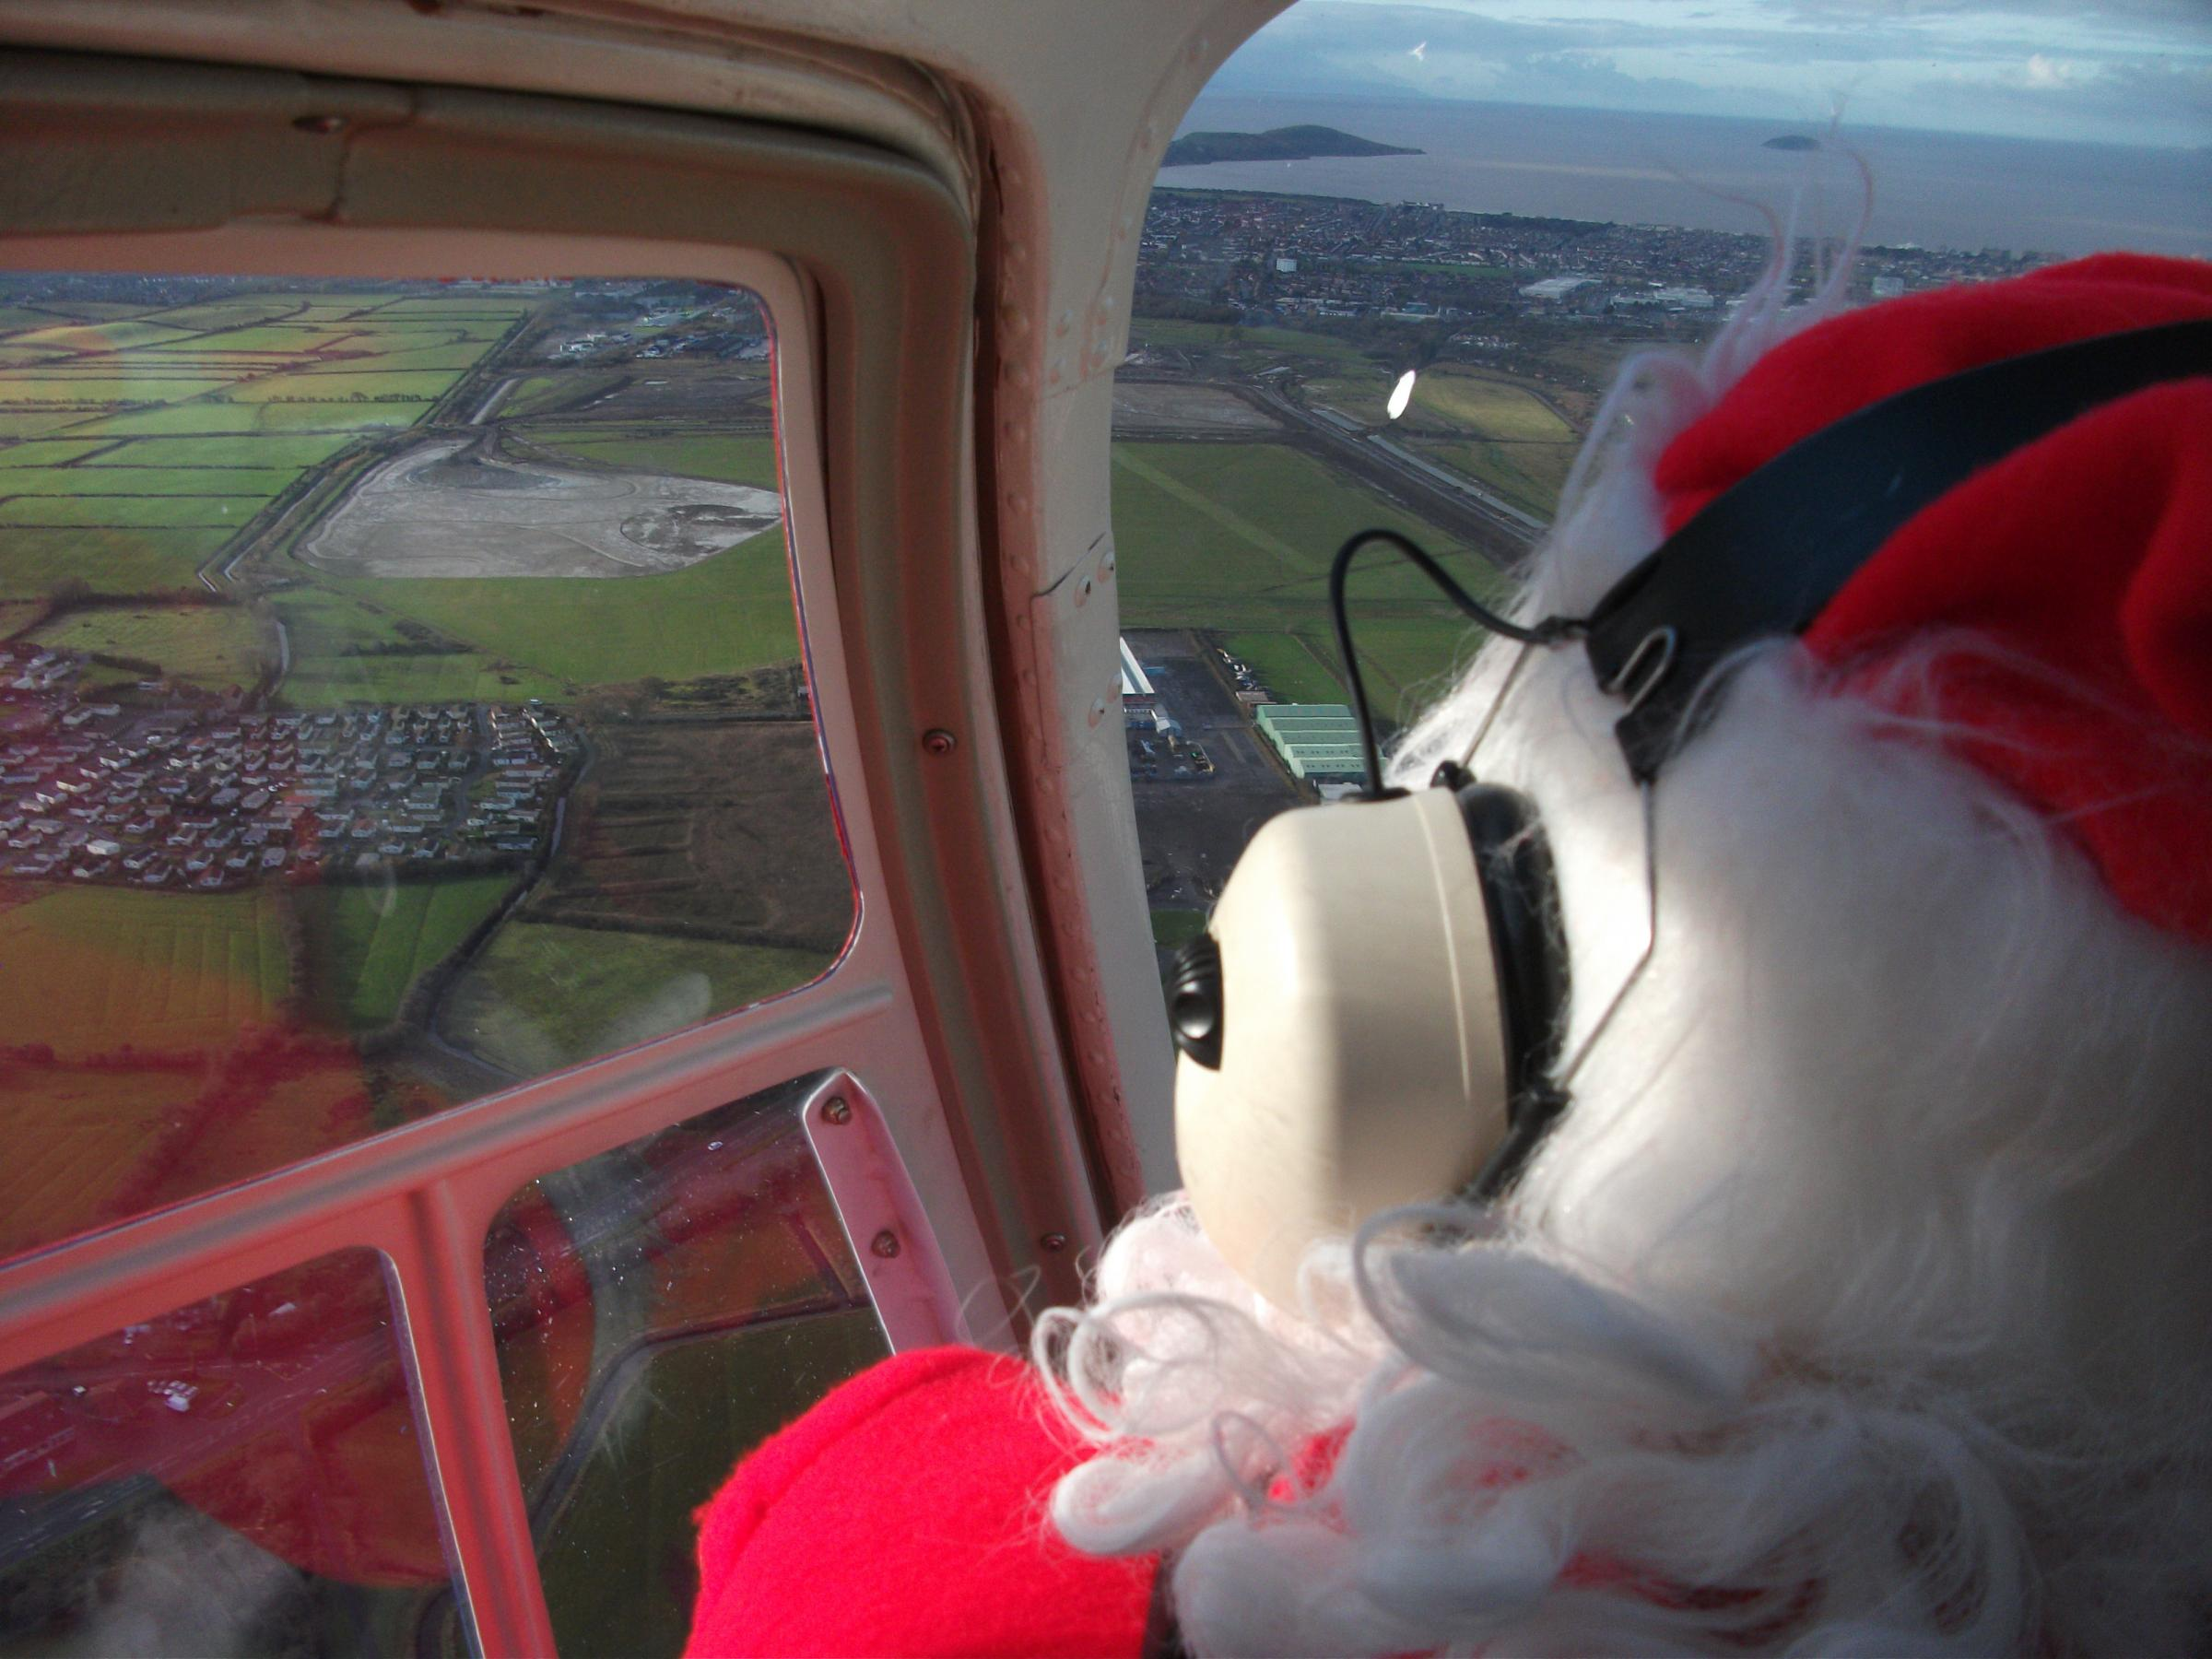 Christmas Family Fun Day – Santa Arrives by Helicopter